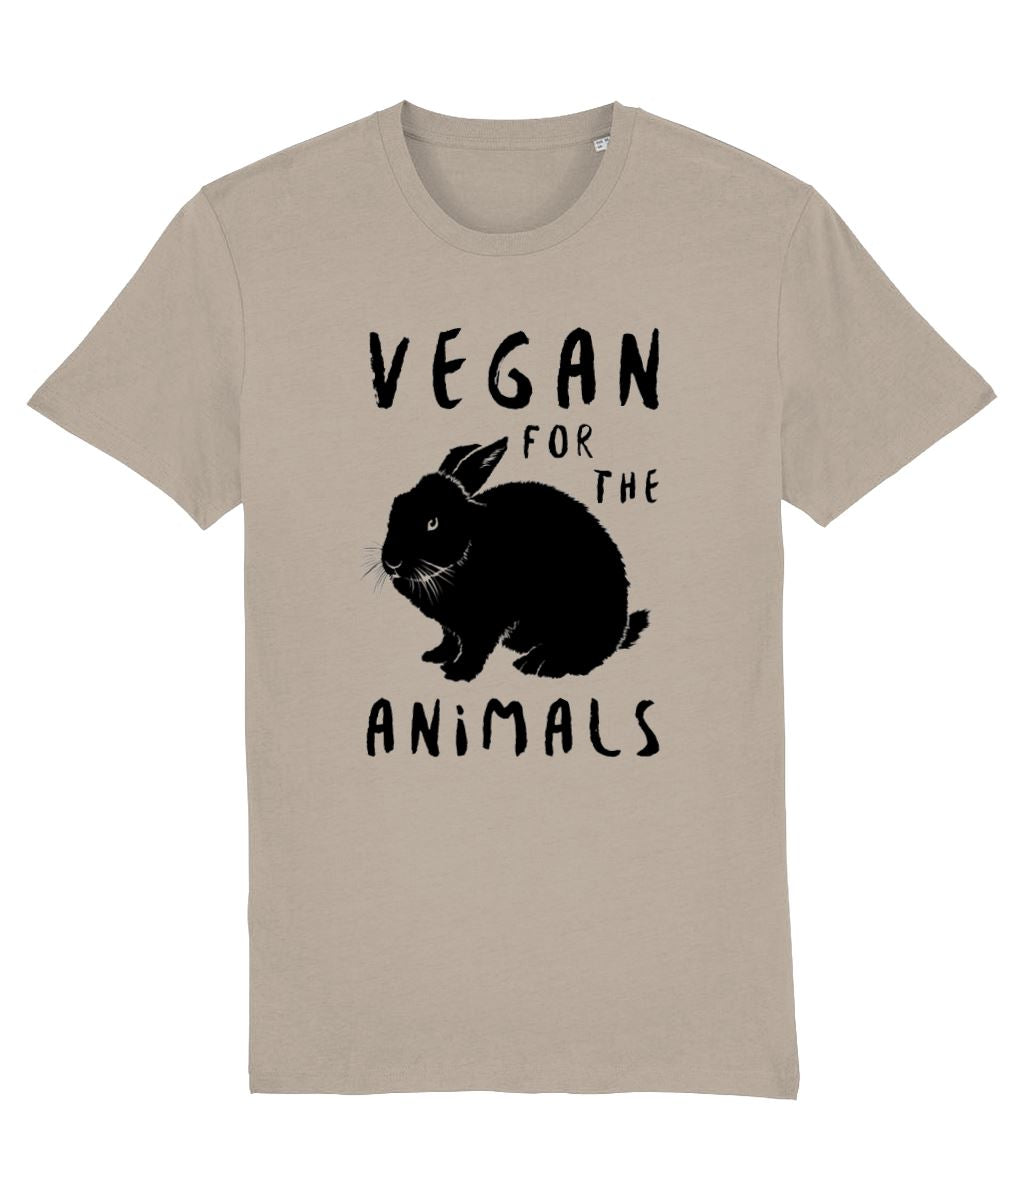 """Vegan for the Animals"" Ethical T-Shirt - 100% Organic Cotton (Unisex) Clothing Vegan Original Desert Dust X-Small"